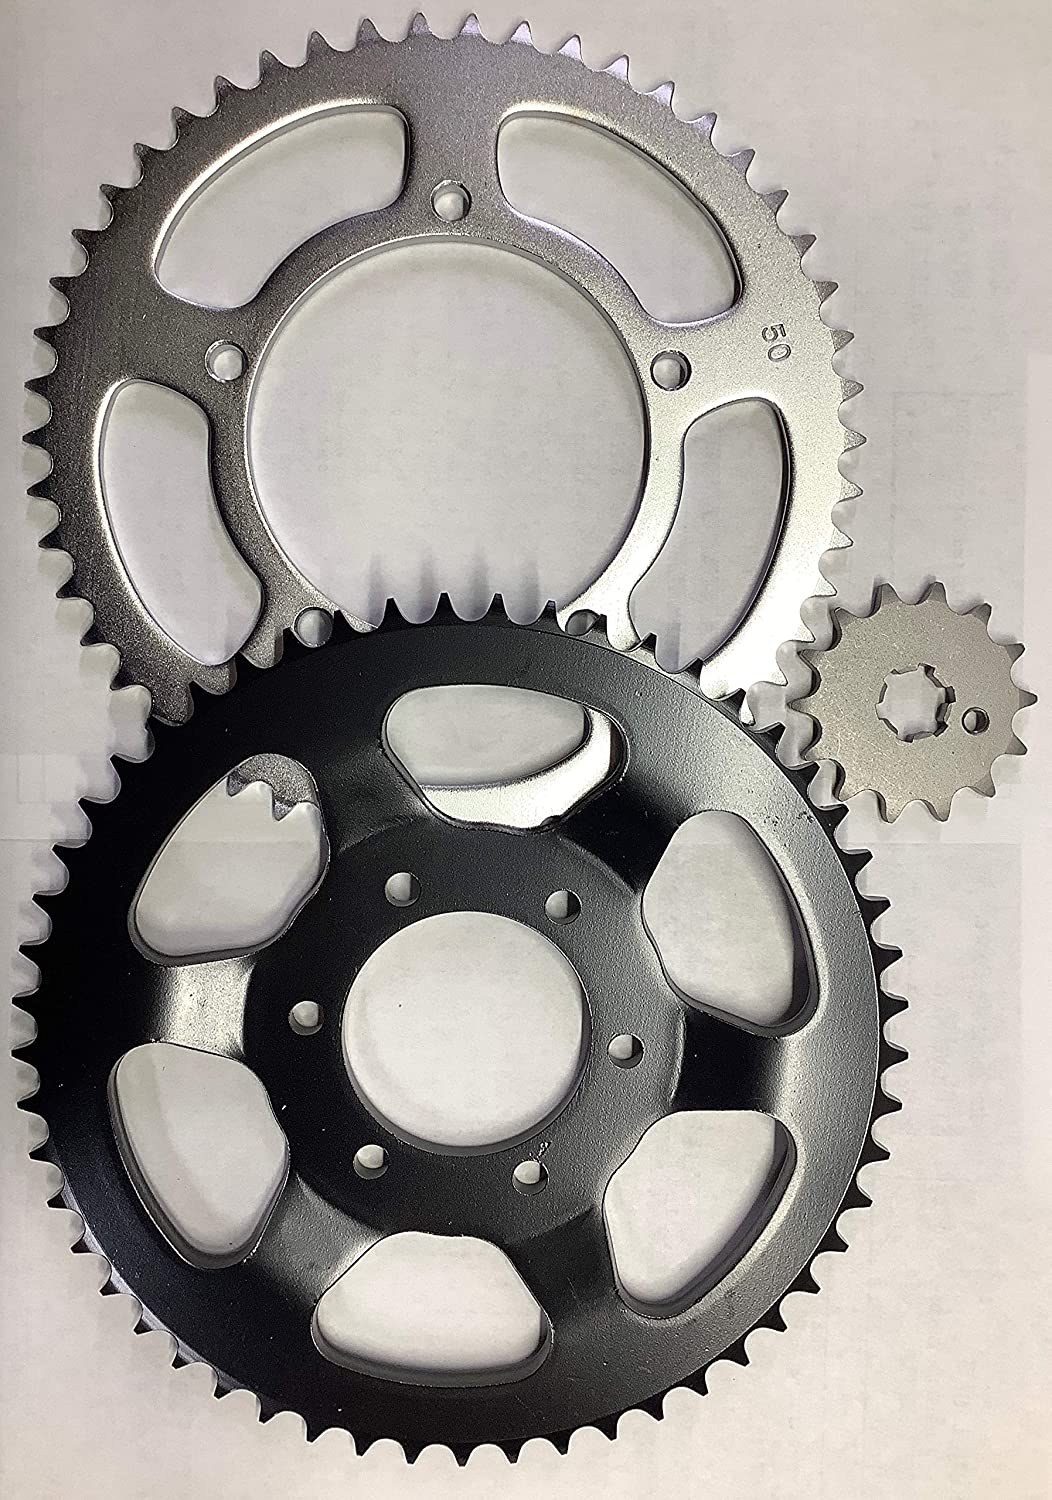 Front Sprocket compatible with Yamaha Teeth RZ 350 Some reservation 1985-1988 16 Selling and selling